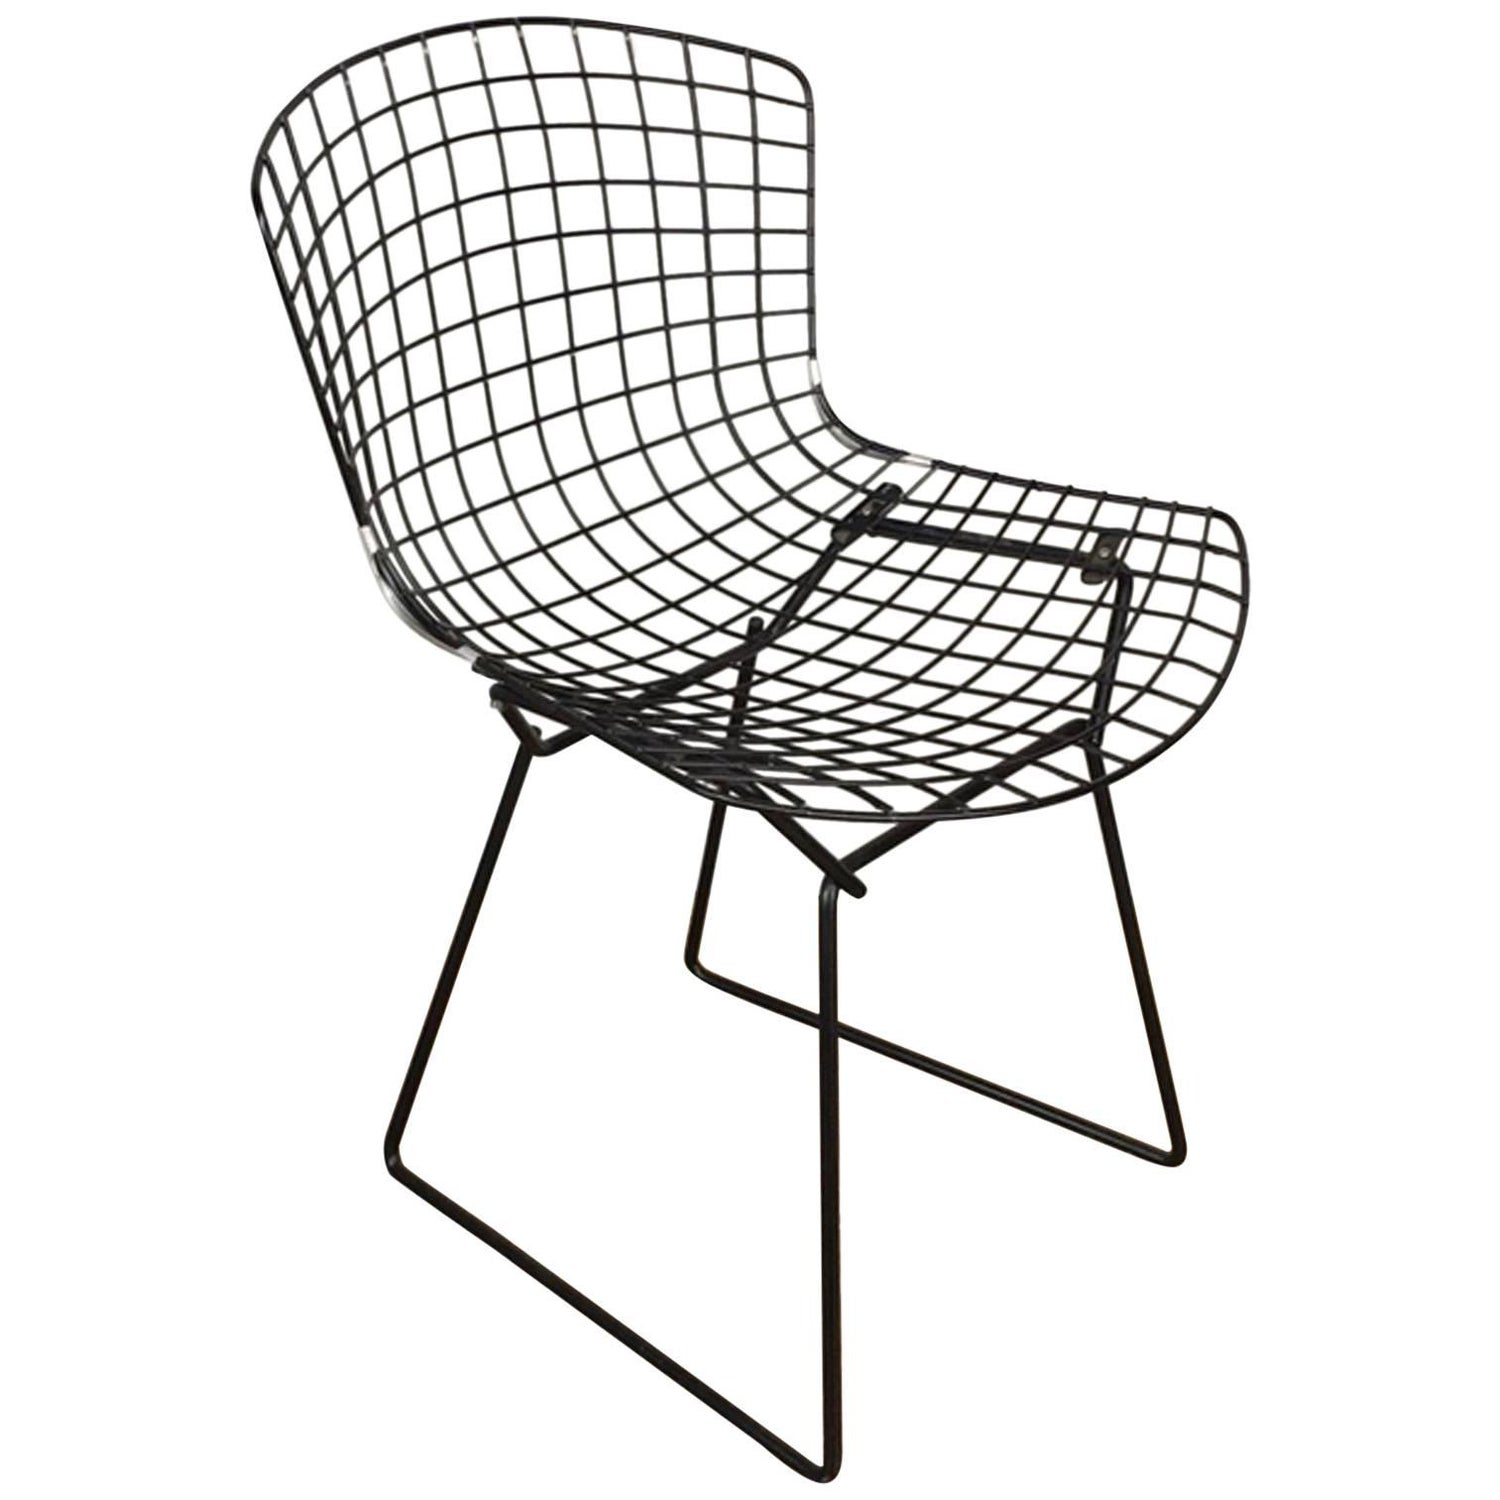 Harry Bertoia Side Chairs - 23 For Sale at 1stdibs